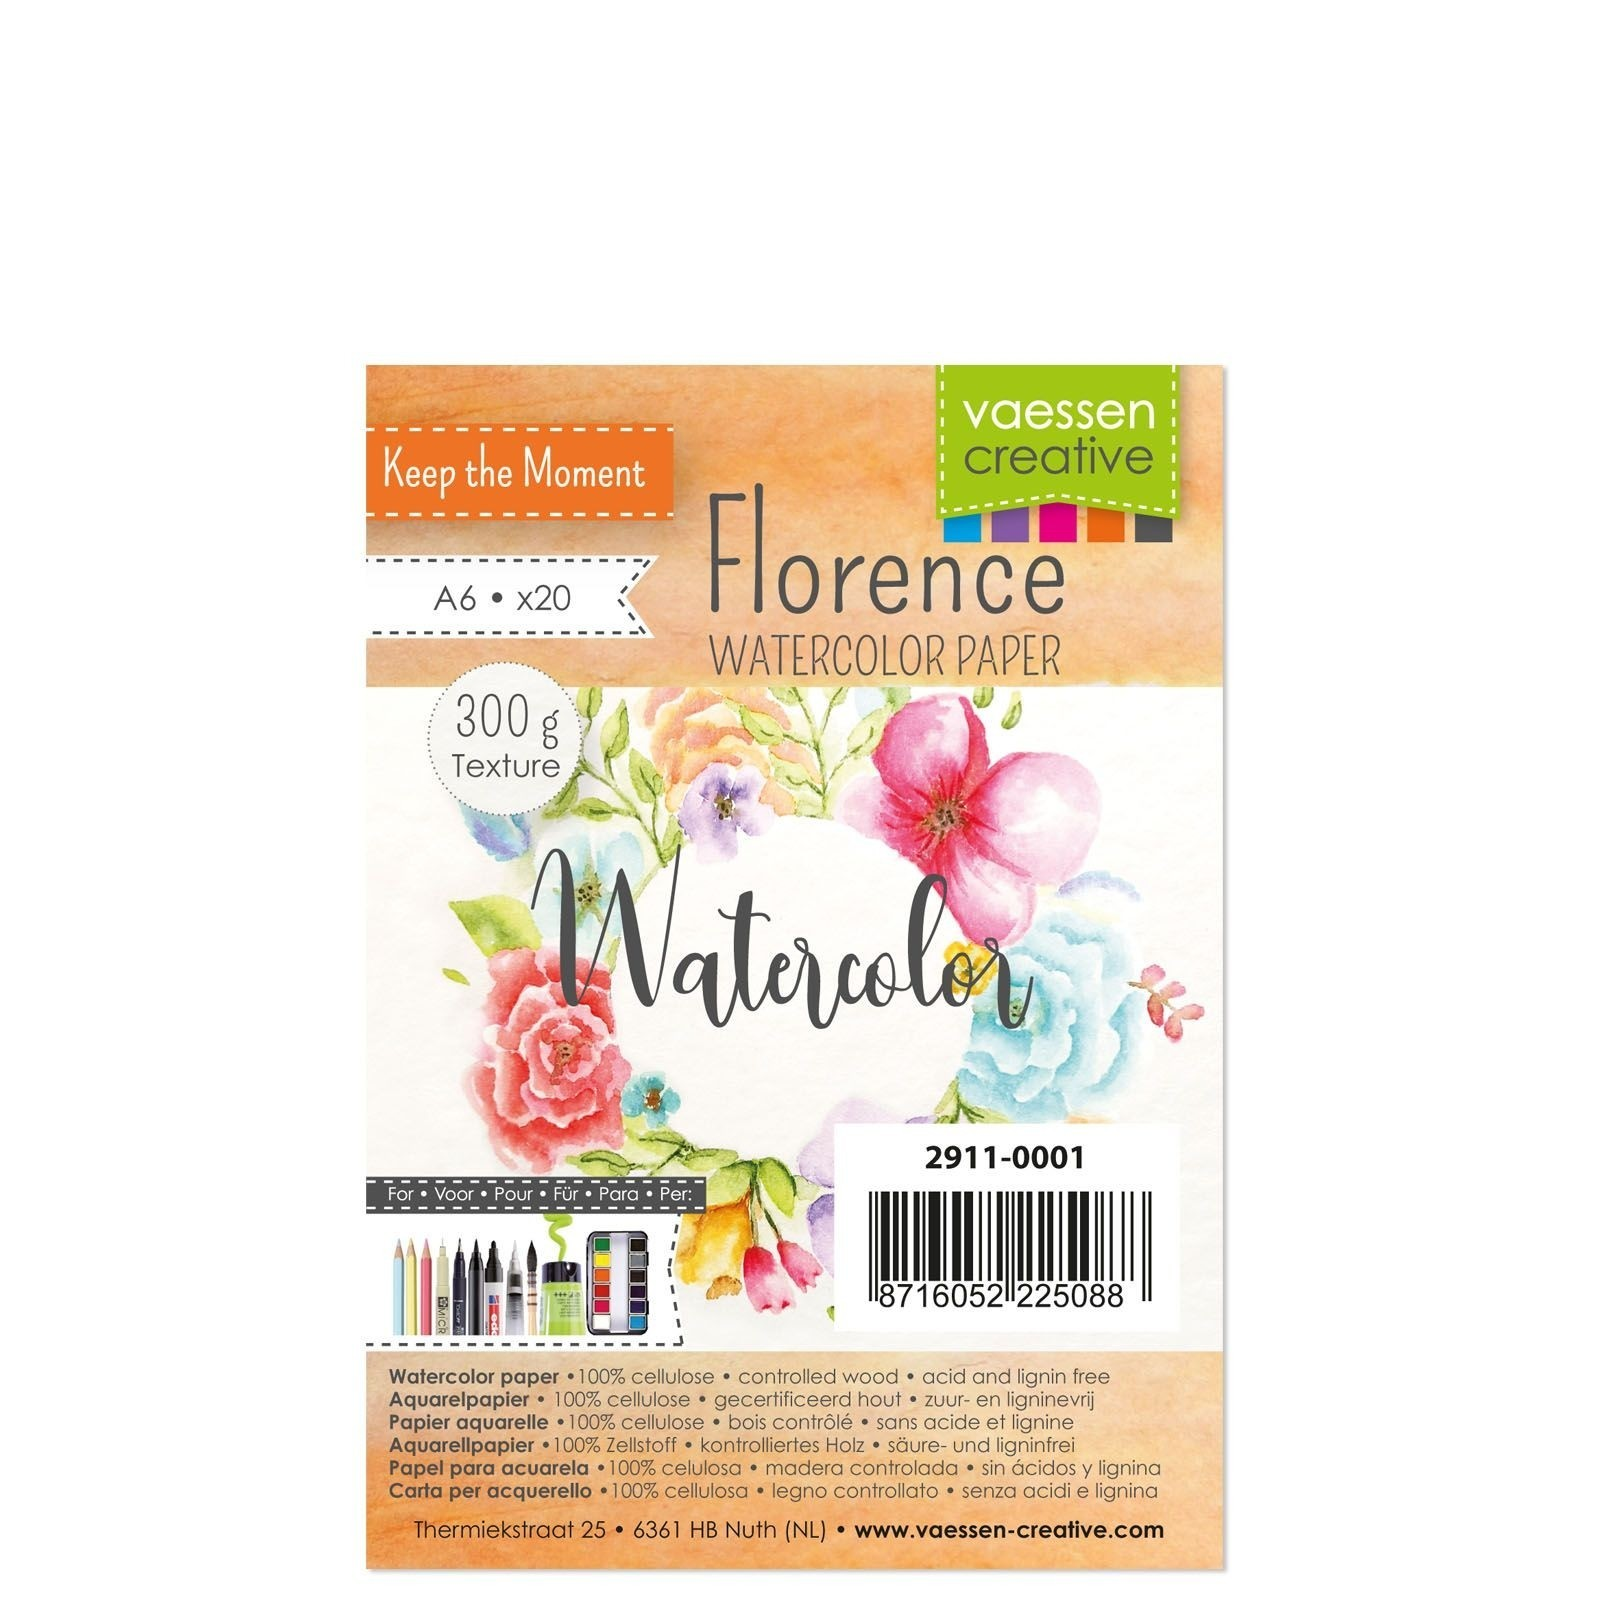 Vaessen Creative - Florence - Watercolor Paper - 300gr Textured - A6 - (20pcs)